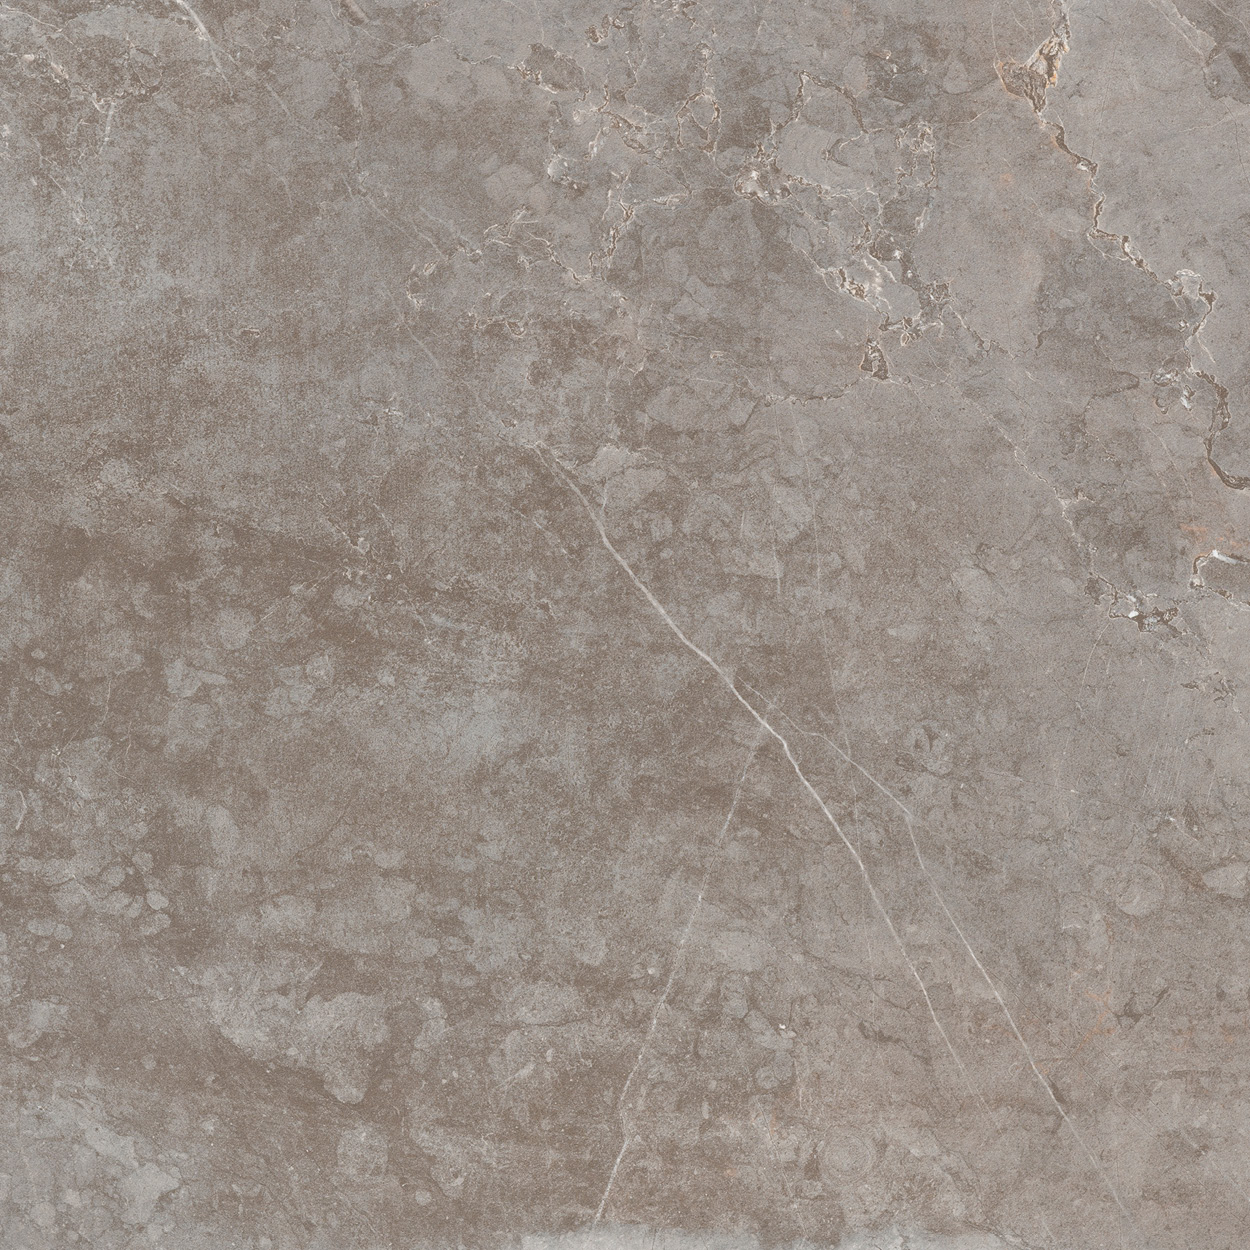 3 X 12 Evo Stone Natural Honed finished Rectified Porcelain Tile